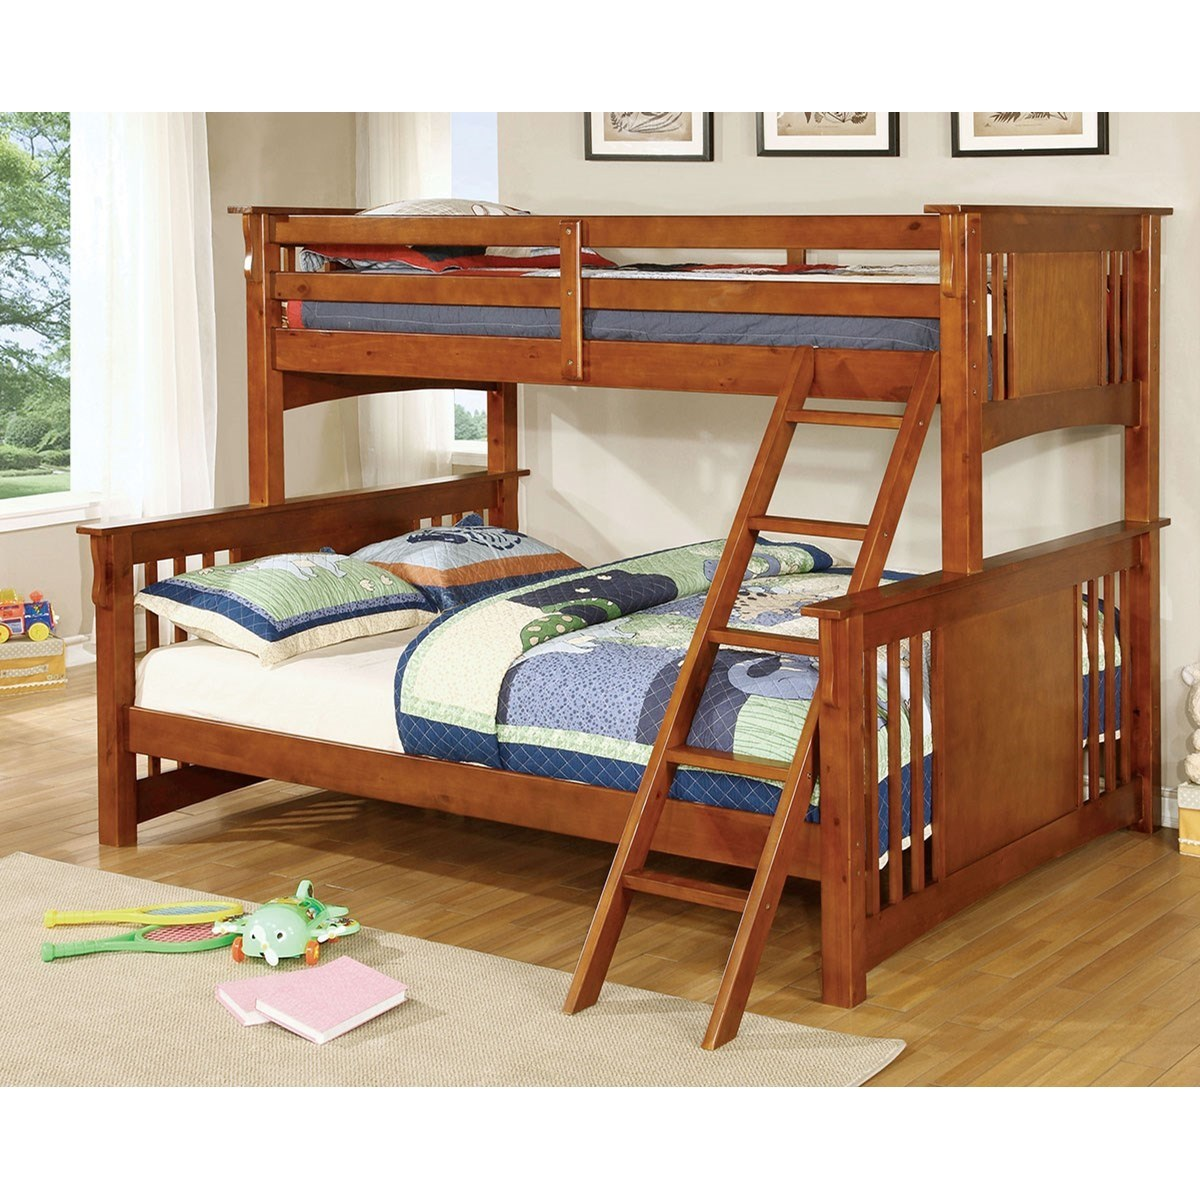 Furniture Of America Spring Creek Cm Bk604oak Bed Extra Large Twin Over Queen Size Youth Bedroom Bunk Bed Corner Furniture Bunk Beds